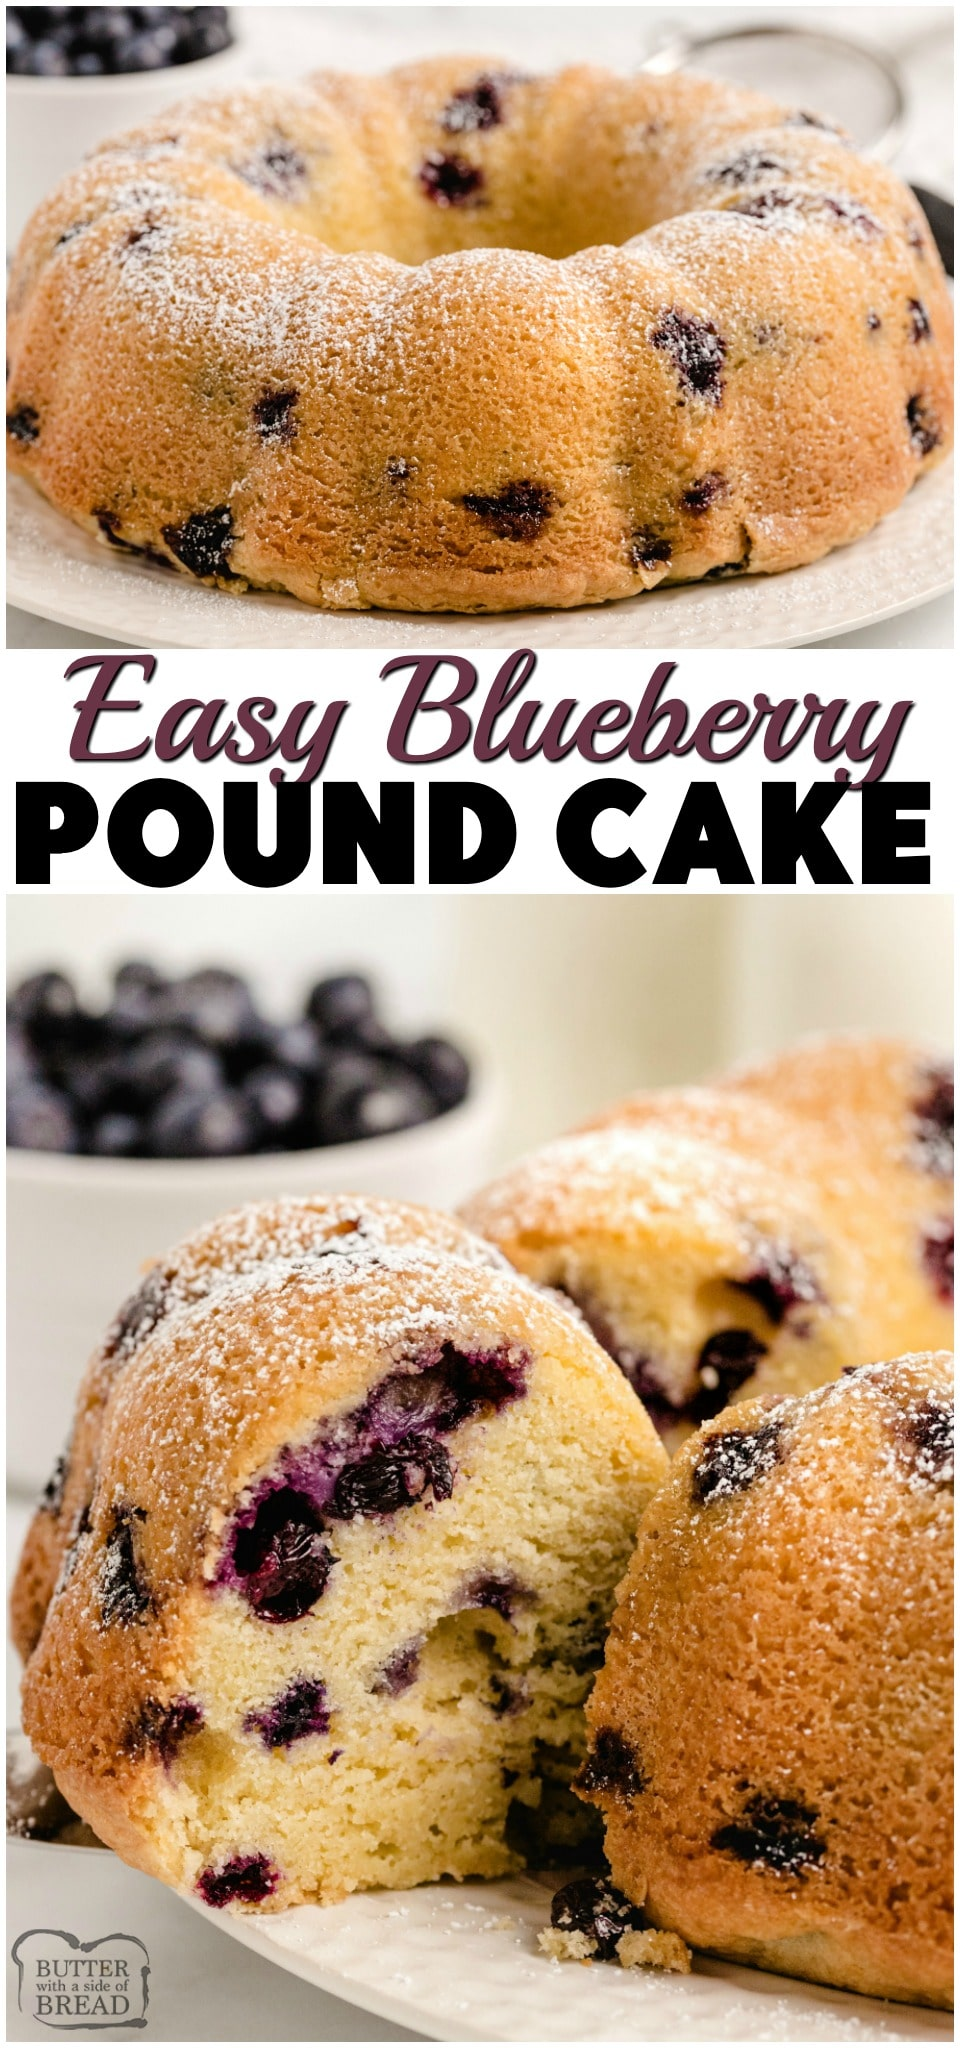 Blueberry Pound Cake make with butter, sugar and fresh blueberries. Elegant pound cake recipe that sweet & tender with bright blueberry flavor & dusted with powdered sugar. #poundcake #cake #blueberries #dessert #baking #blueberry #recipe from BUTTER WITH A SIDE OF BREAD